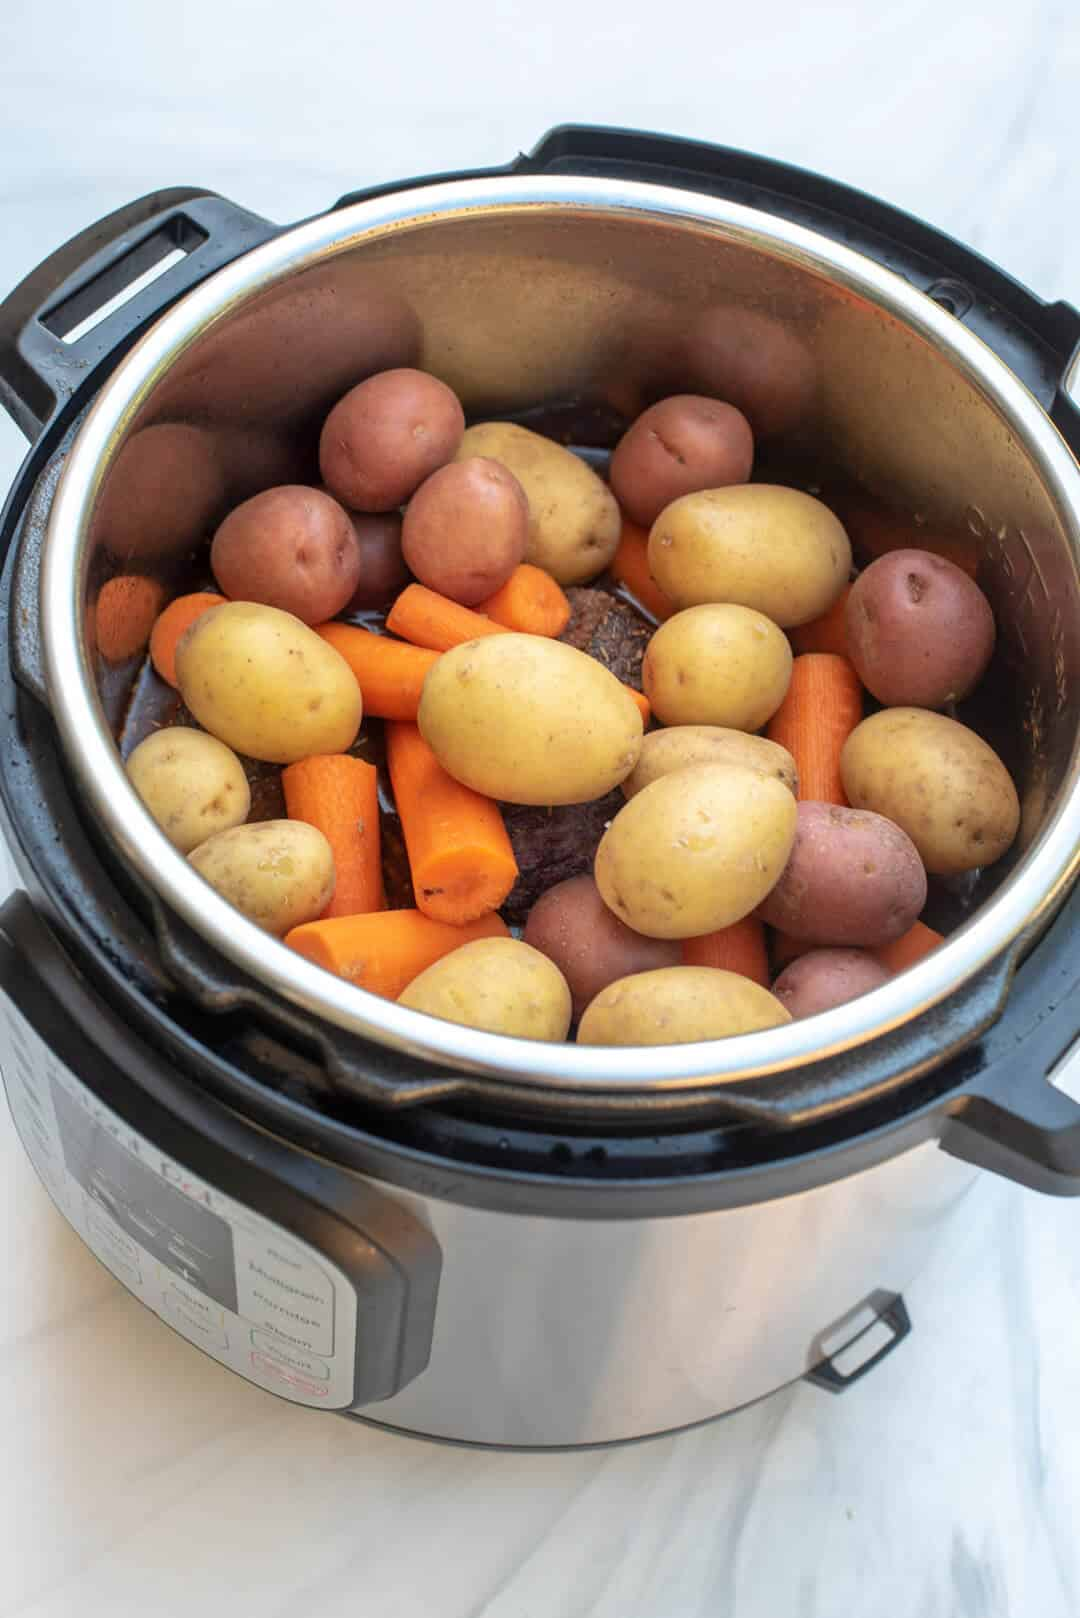 The beef roast, liquid, and vegetables in the Instant Pot.